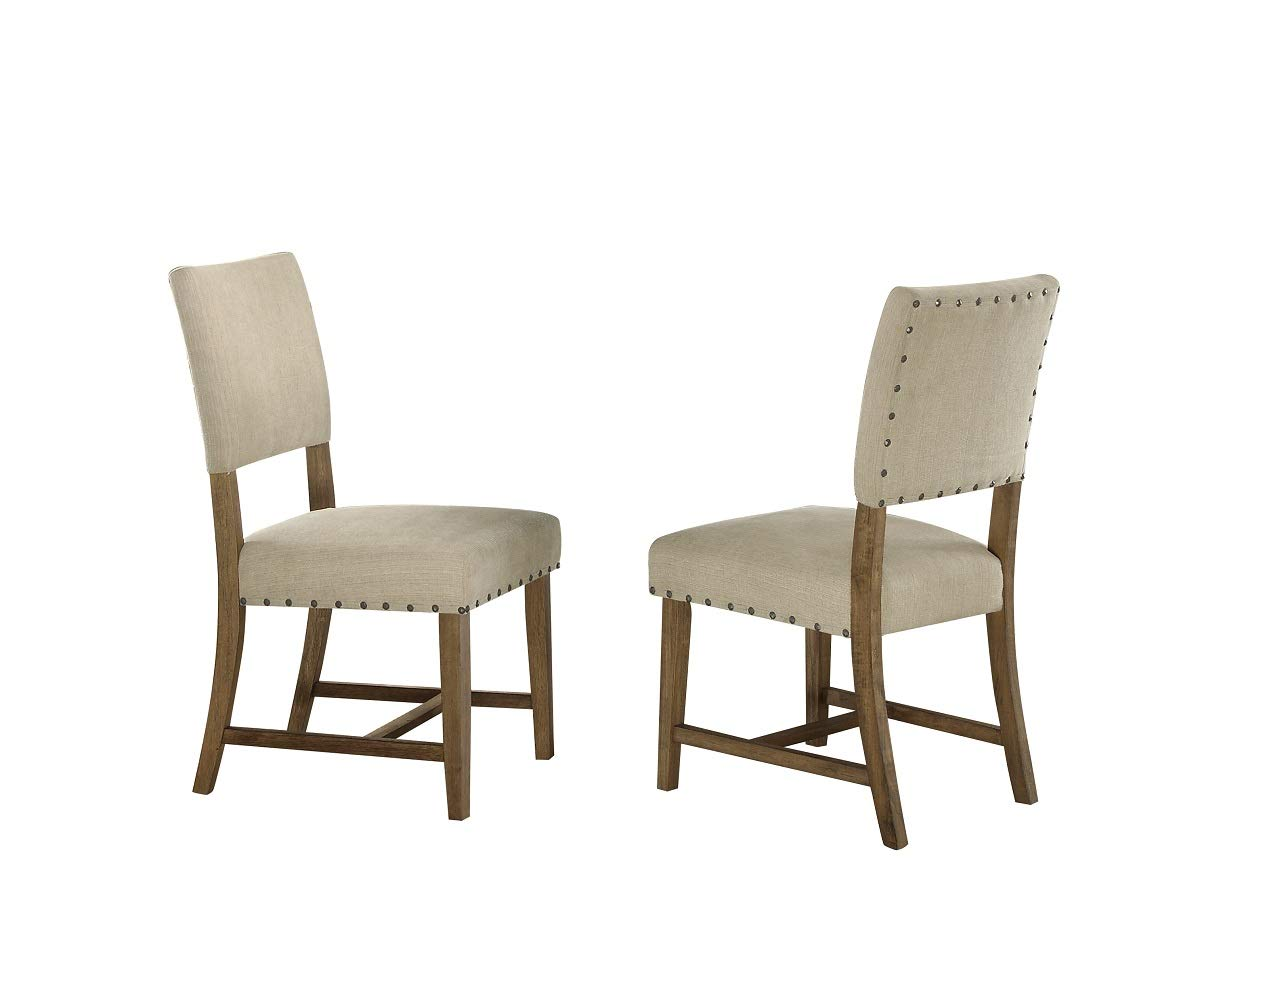 Homelegance Veltry Dining Chairs with Nail Head Accent Set of 2 , Beige